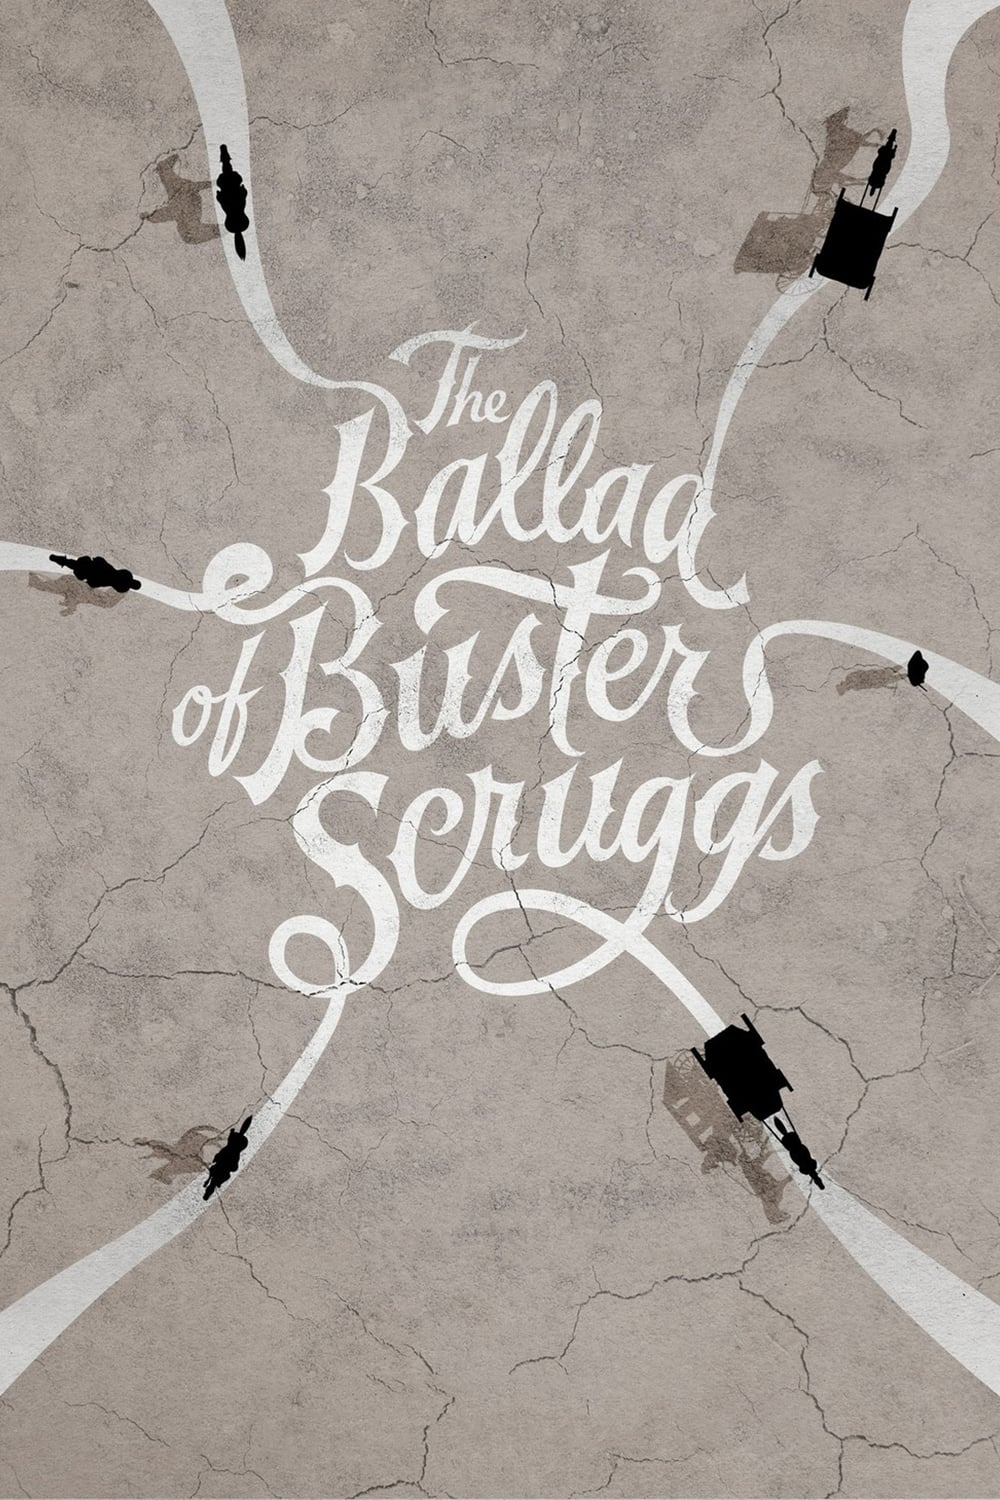 Ep60 – The Ballad of Buster Scruggs